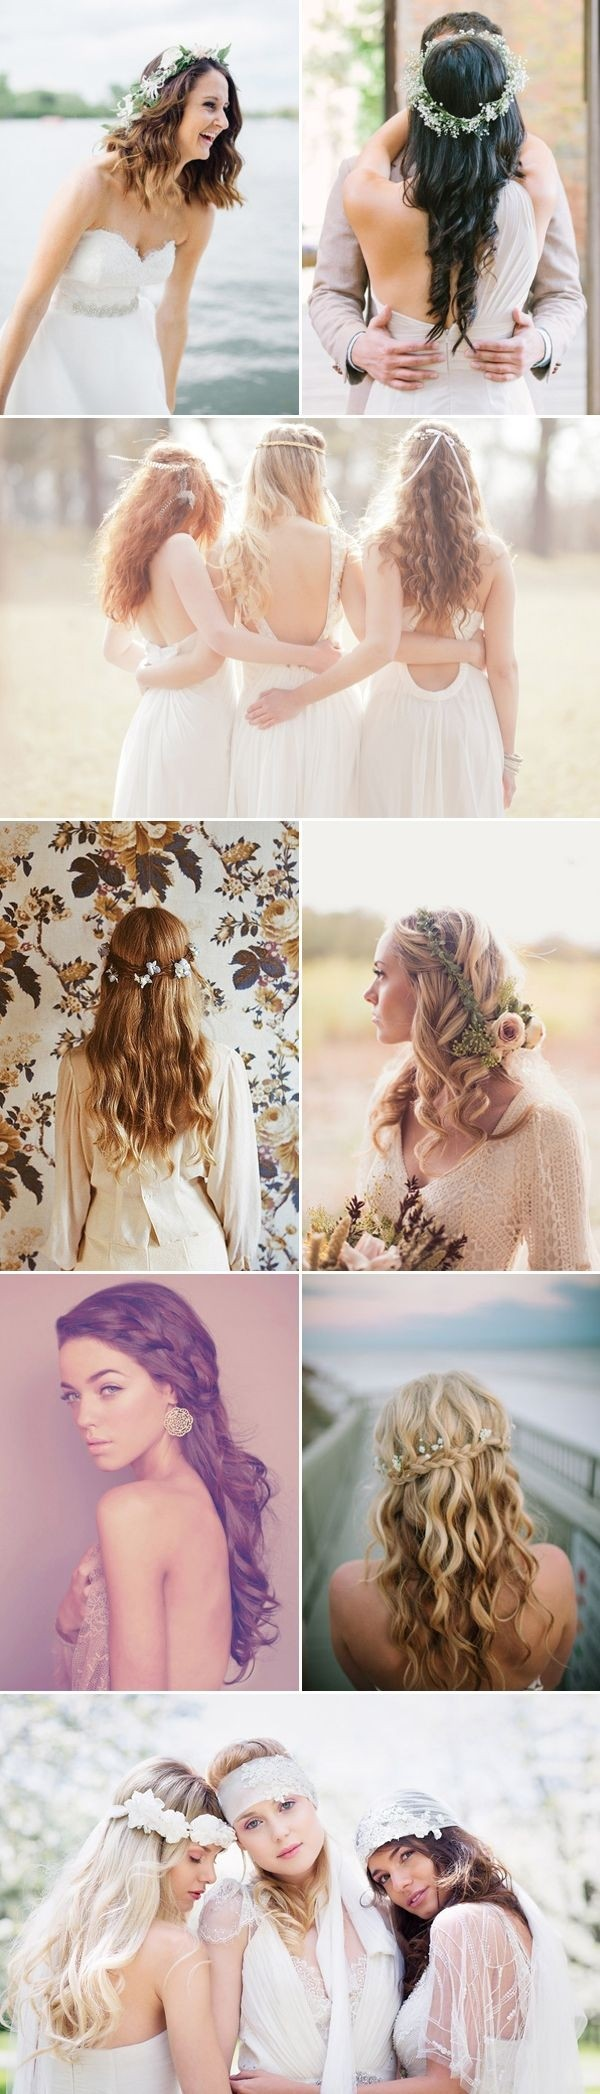 Natural Bridesmaids Hairstyles